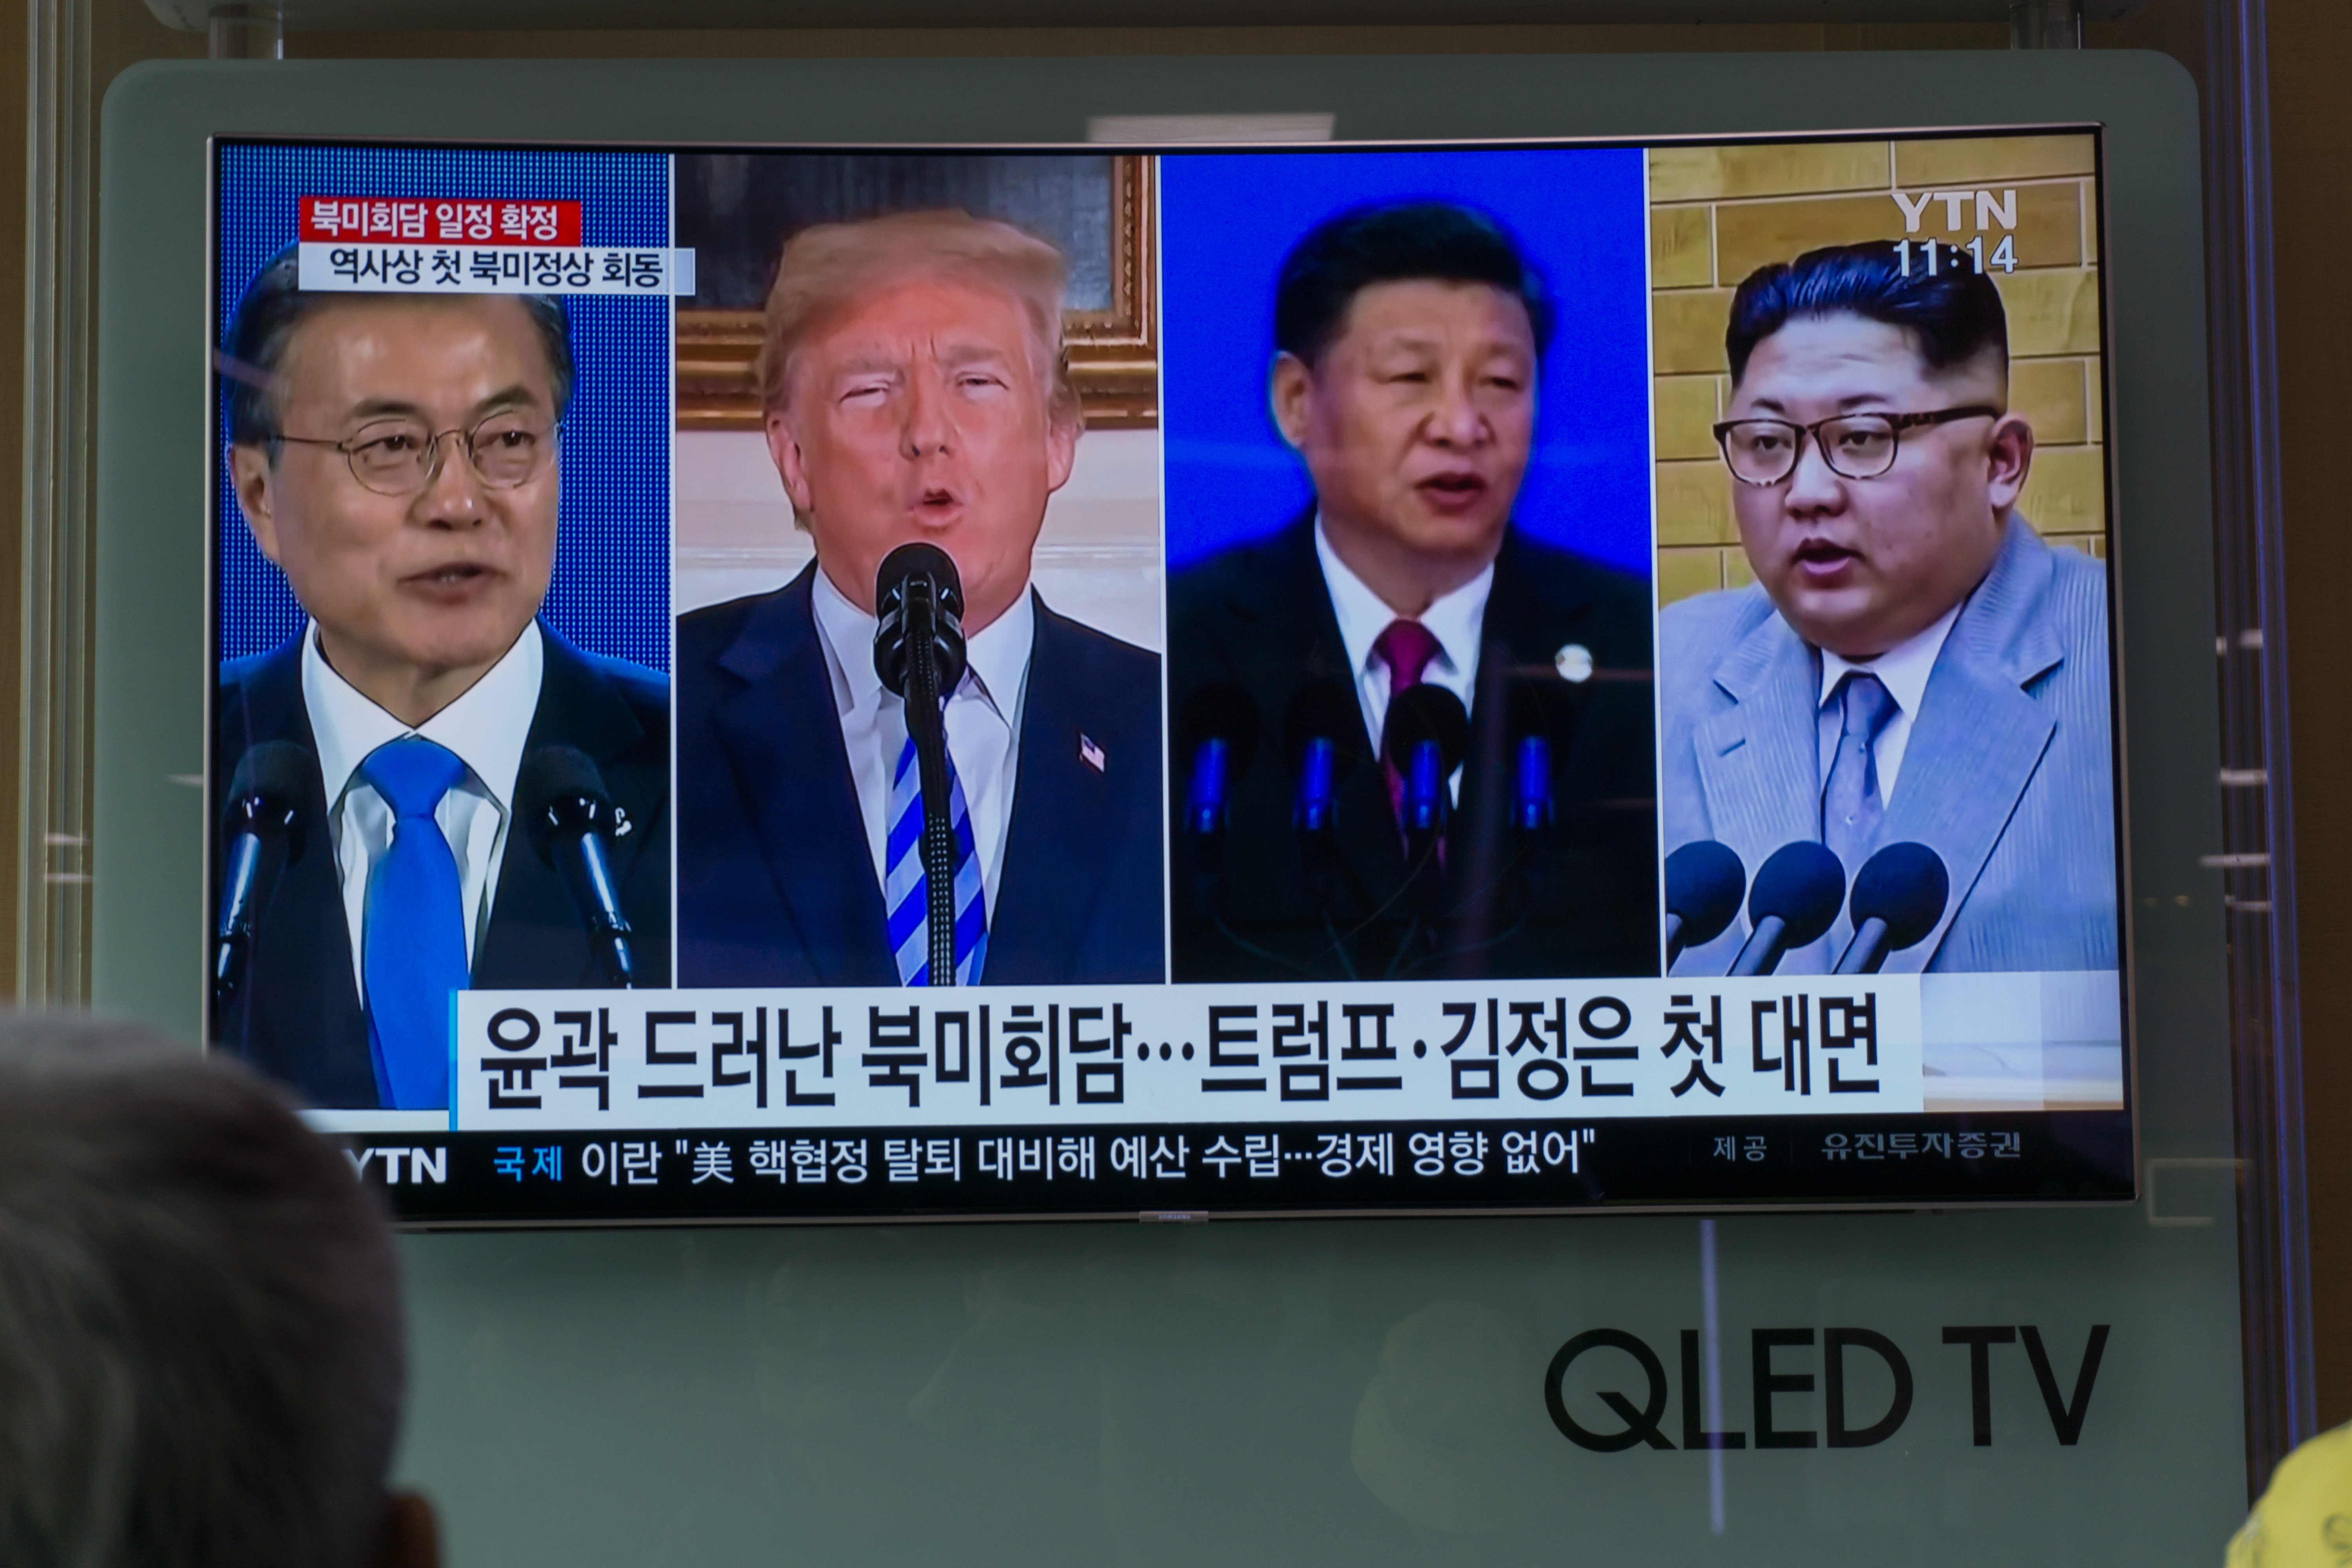 People watch a screen showing images of South Korea's president Moon Jae-in, U.S. president Donald Trump, China's president Xi Jinping, and North Korea's leader Kim Jong Un at a railway station in Seoul on May 11, 2018.